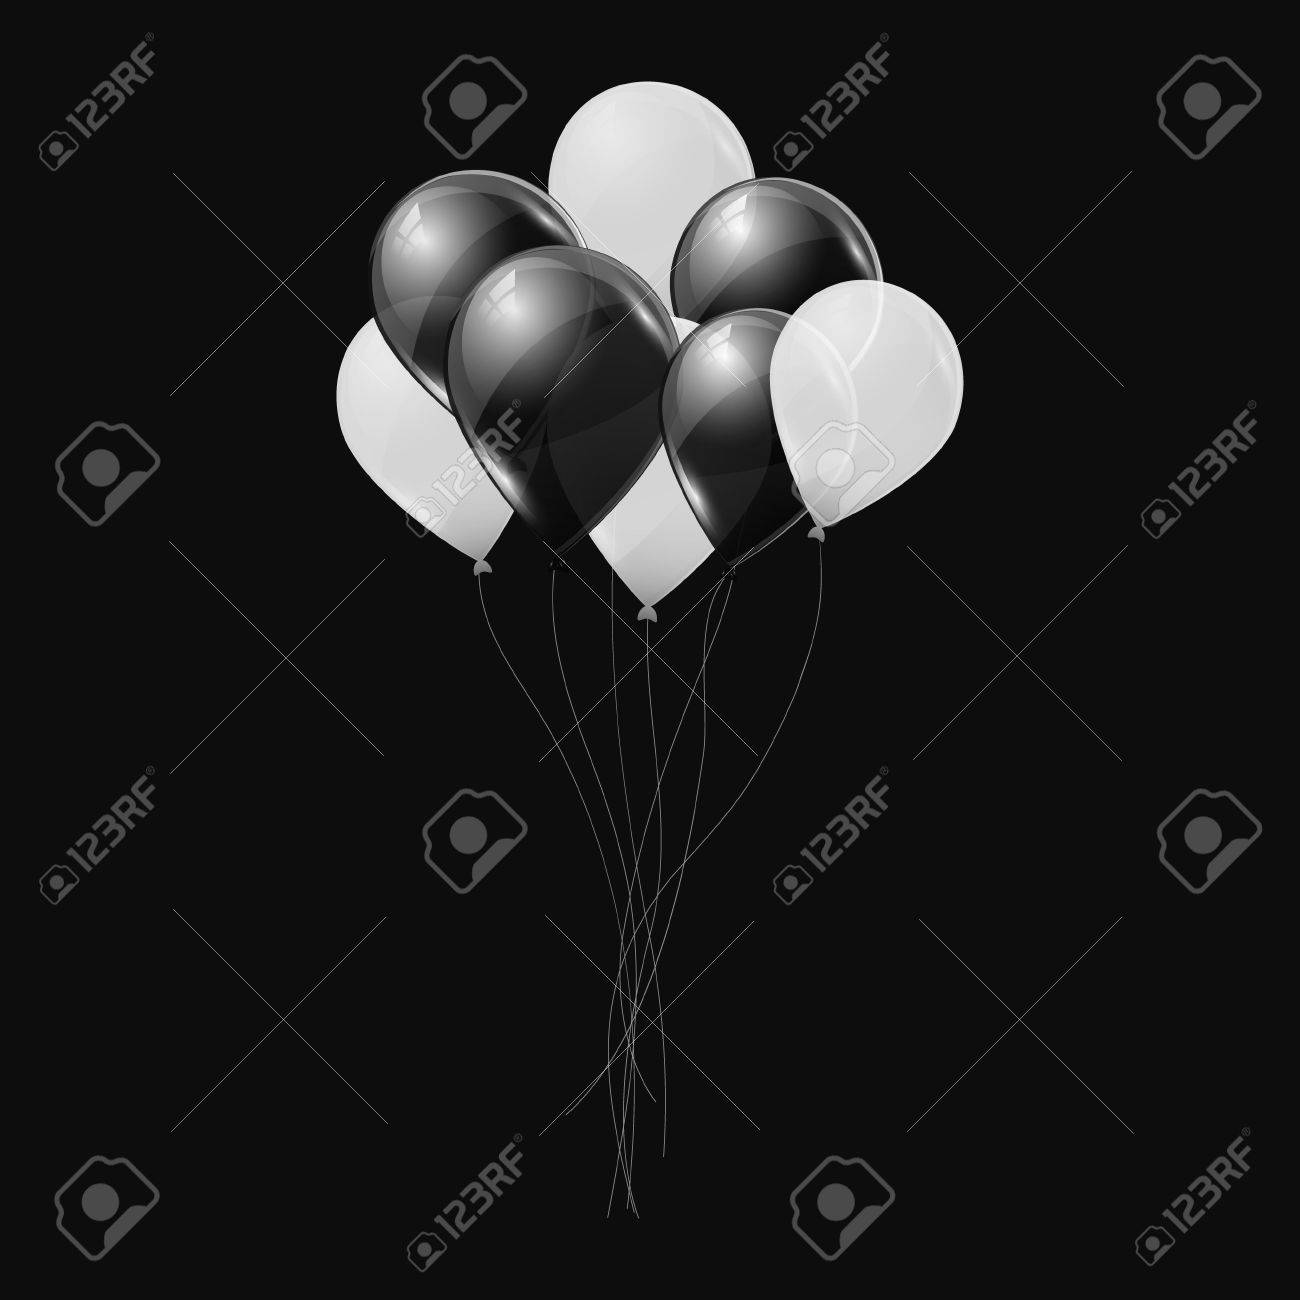 Black and white helium balloons on black background. Flying latex ballons. Vector illustration. - 68353194